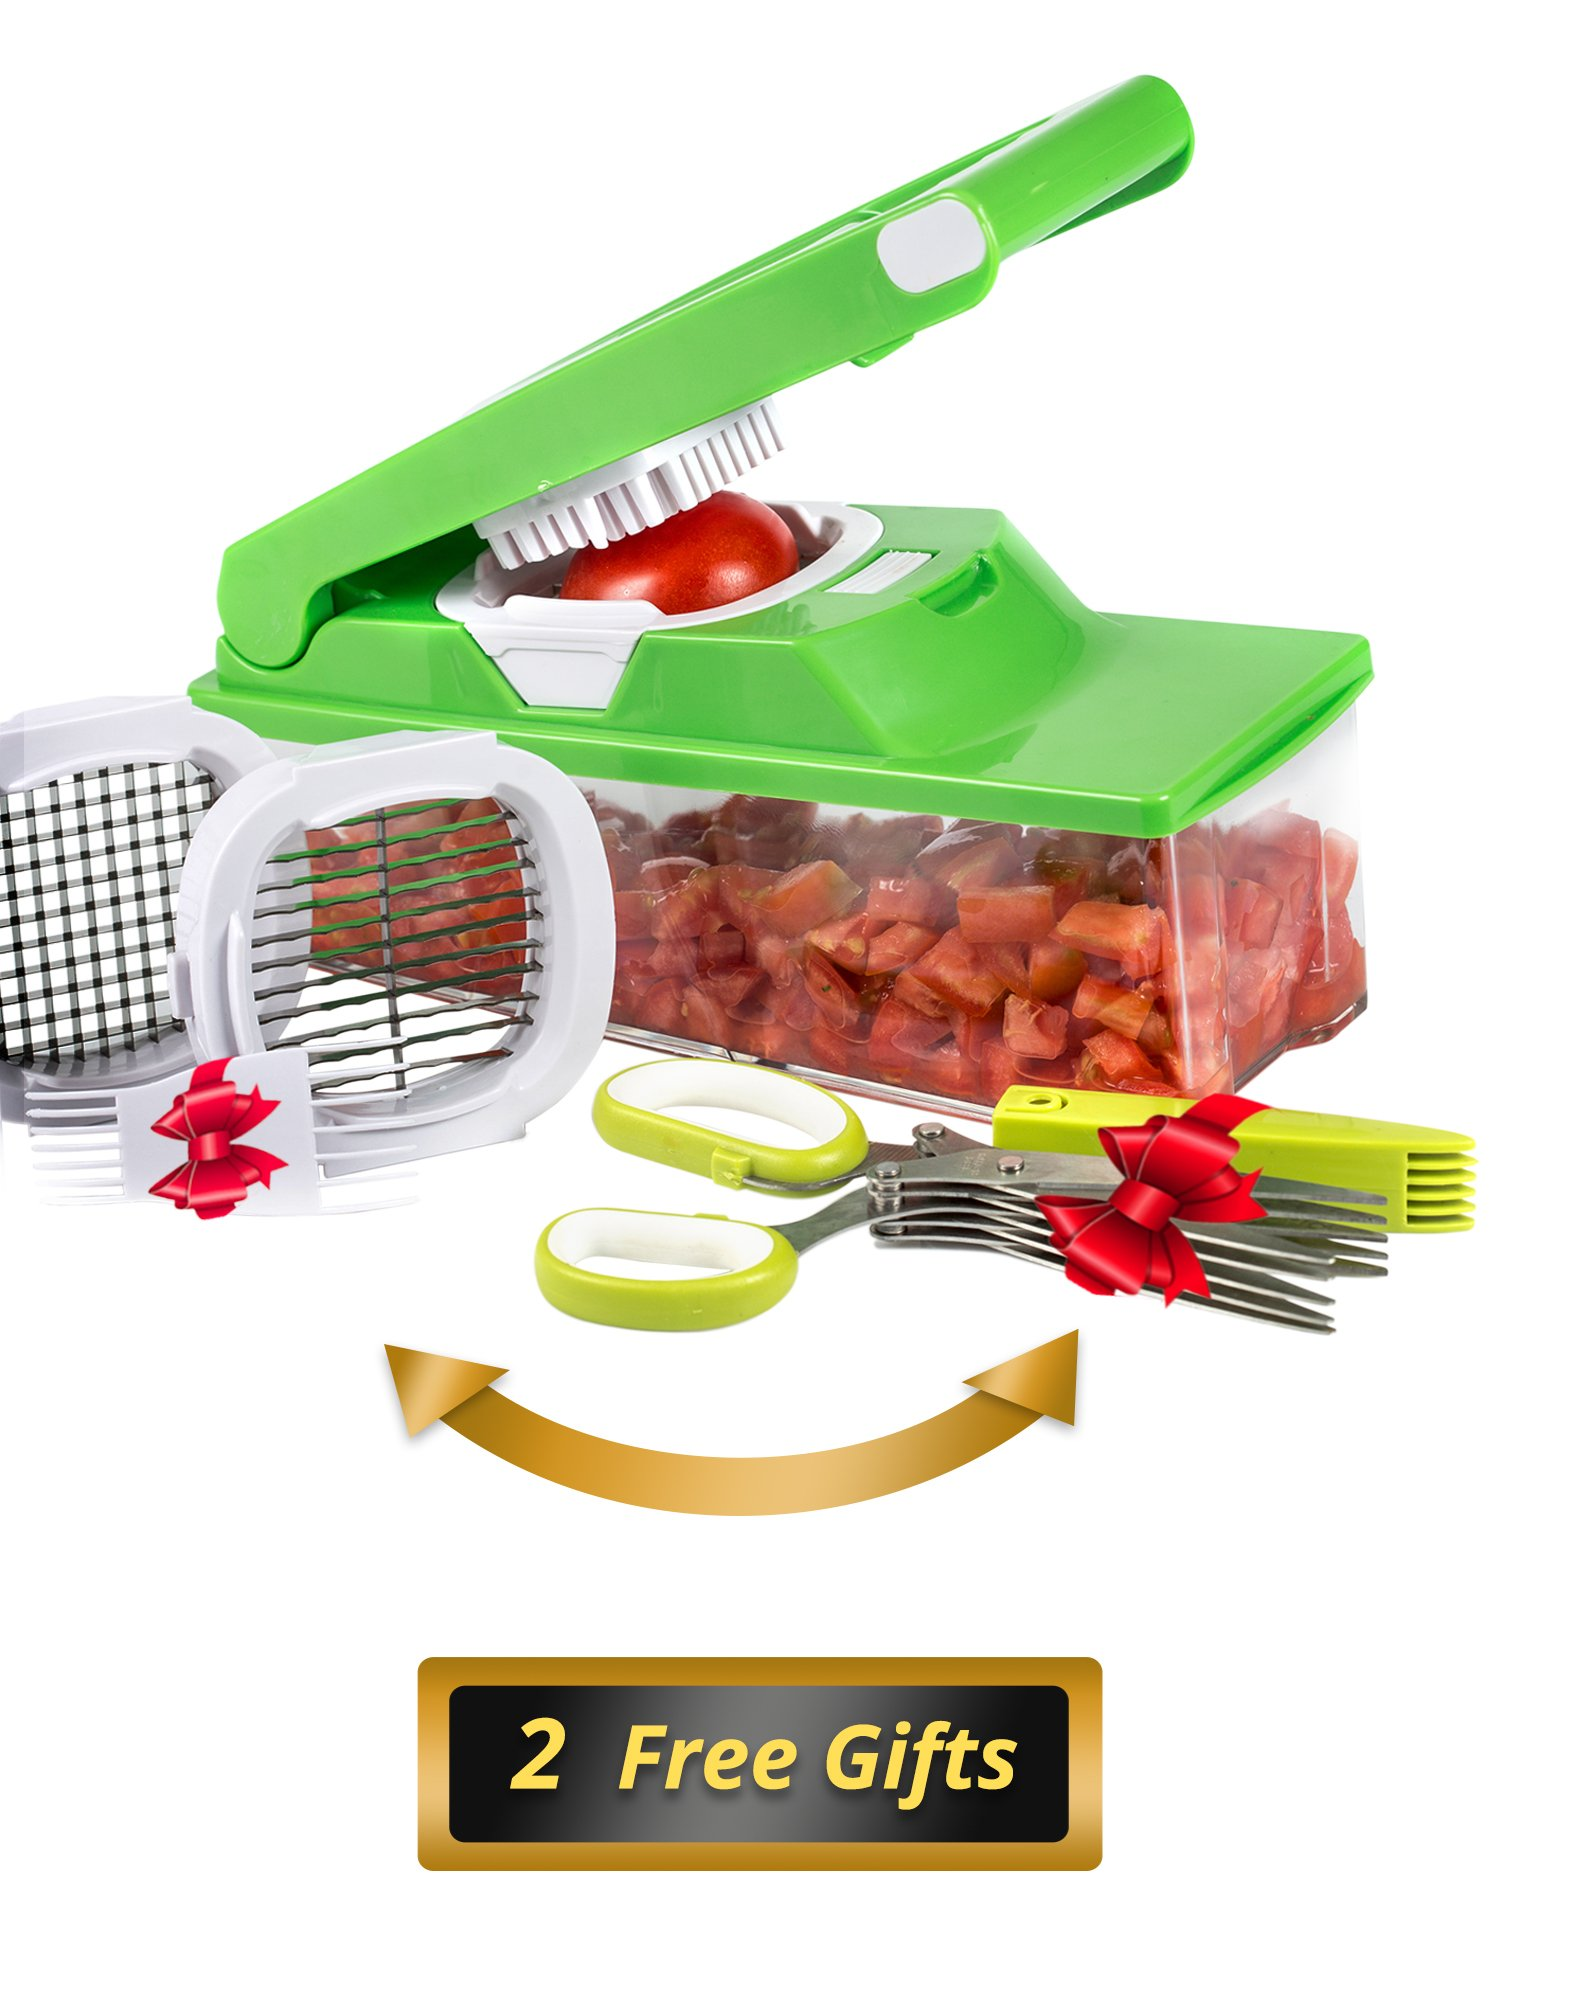 Best Vegetable Chopper Food Dicer by The Simple Kitchen - Tearless Vidalia Onion Chopper Will Chop, Dice and Julienne Vegetables & Fruit Quicker Than Eve - 1.5L - Cleaning Brush + BONUS Herb Scissors